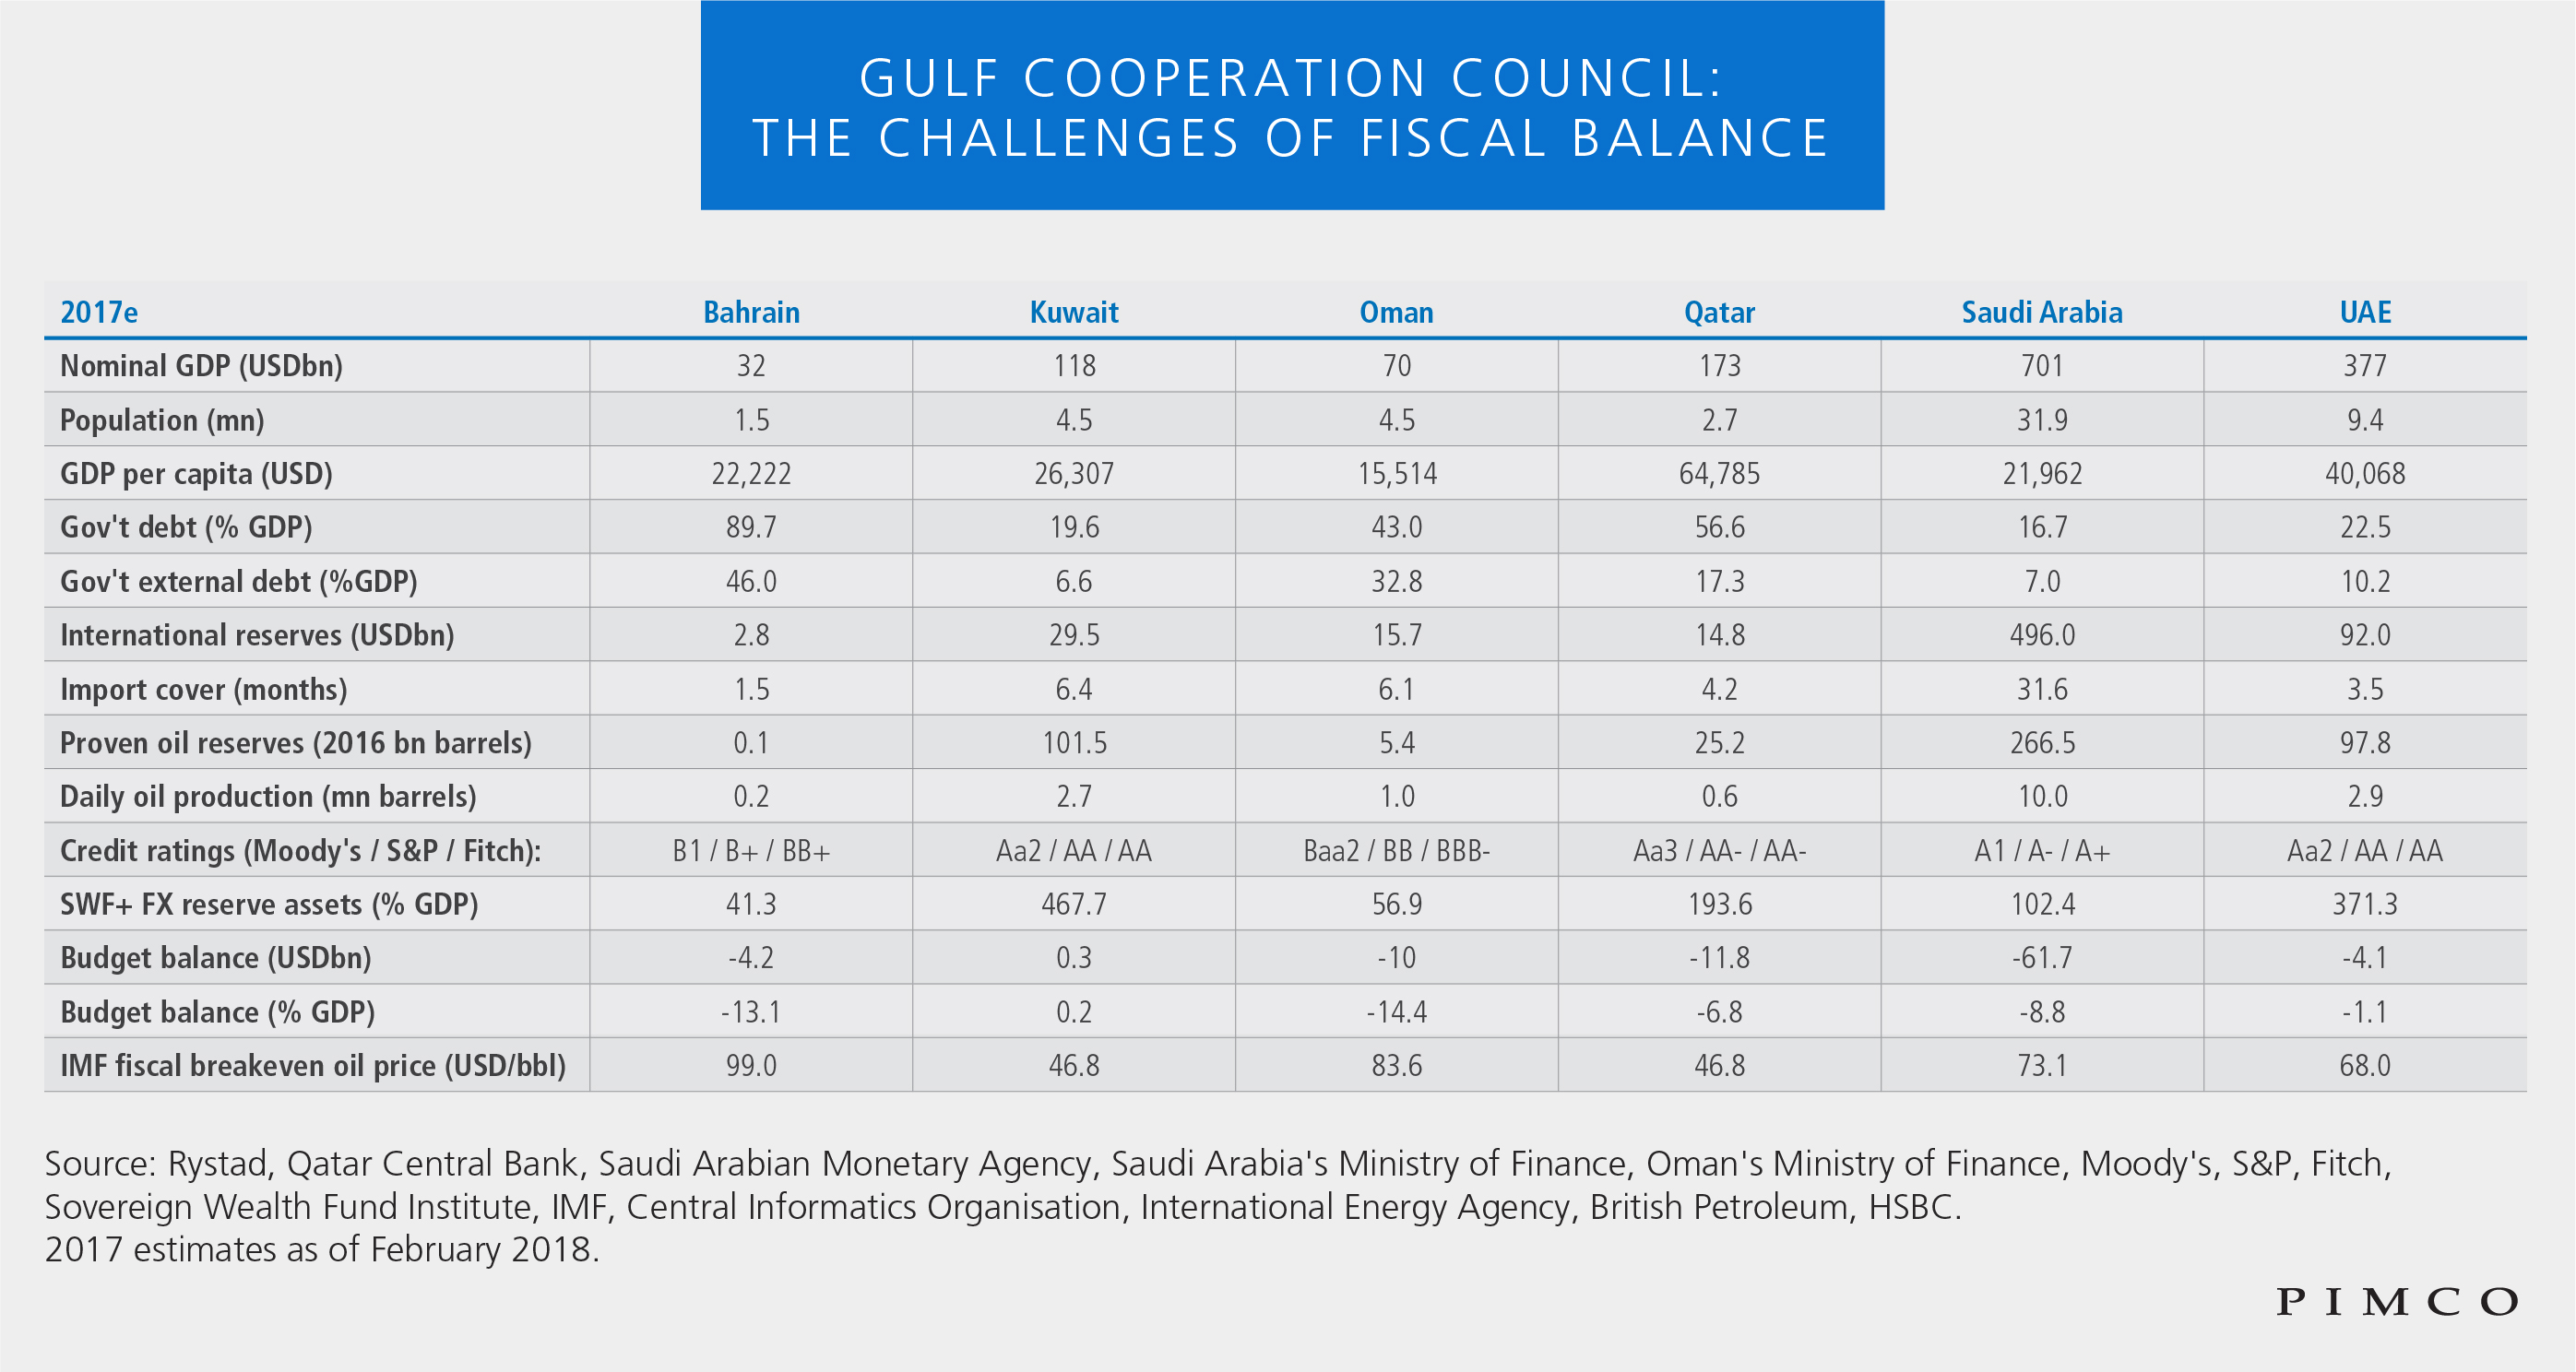 Gulf Cooperation Council: the challenges of fiscal balance